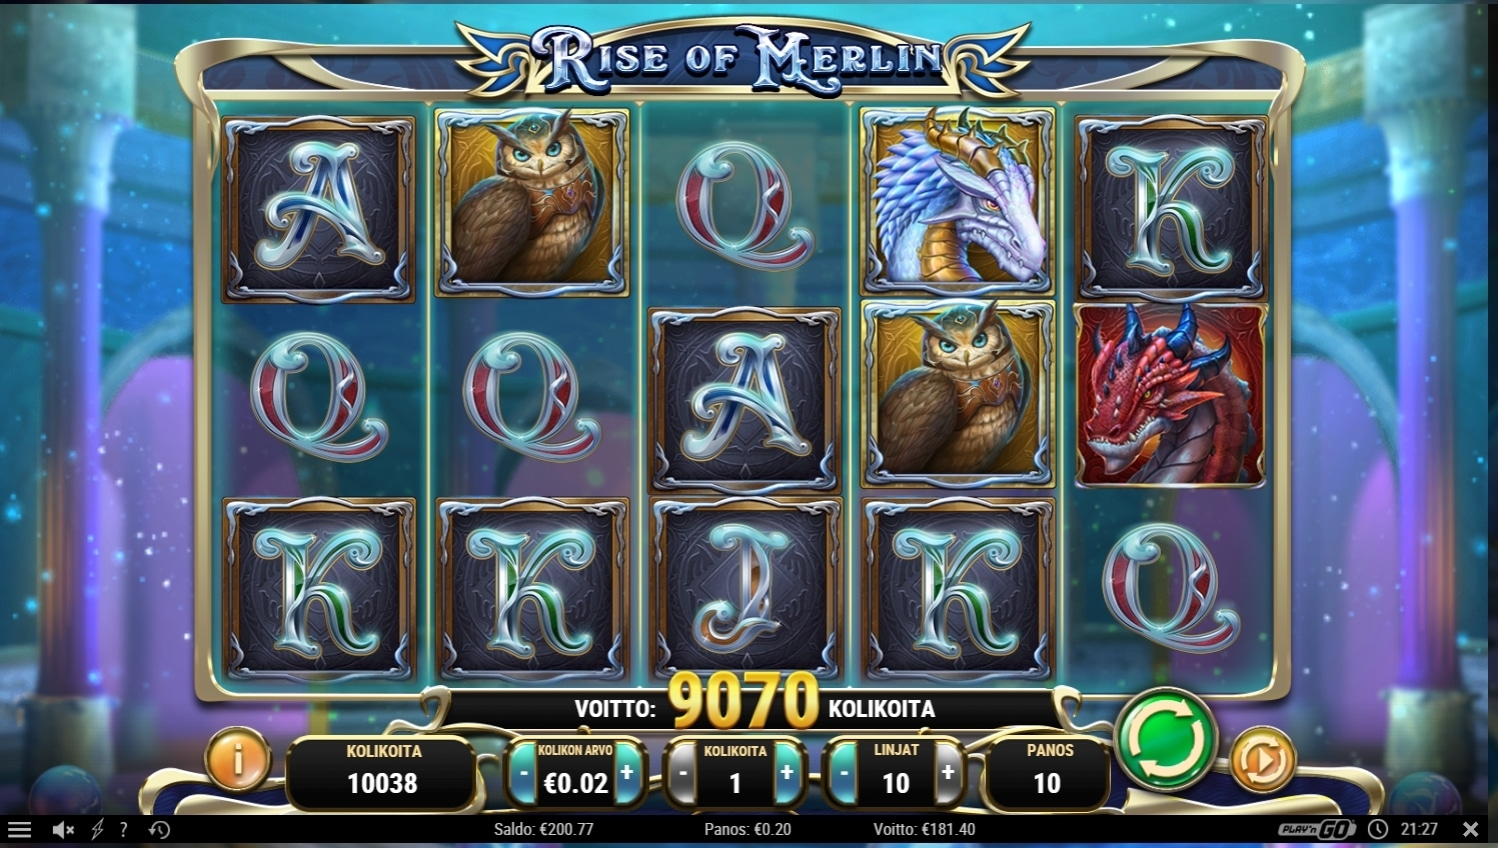 Rise of Merlin Big win Picture by Dj_Niemi